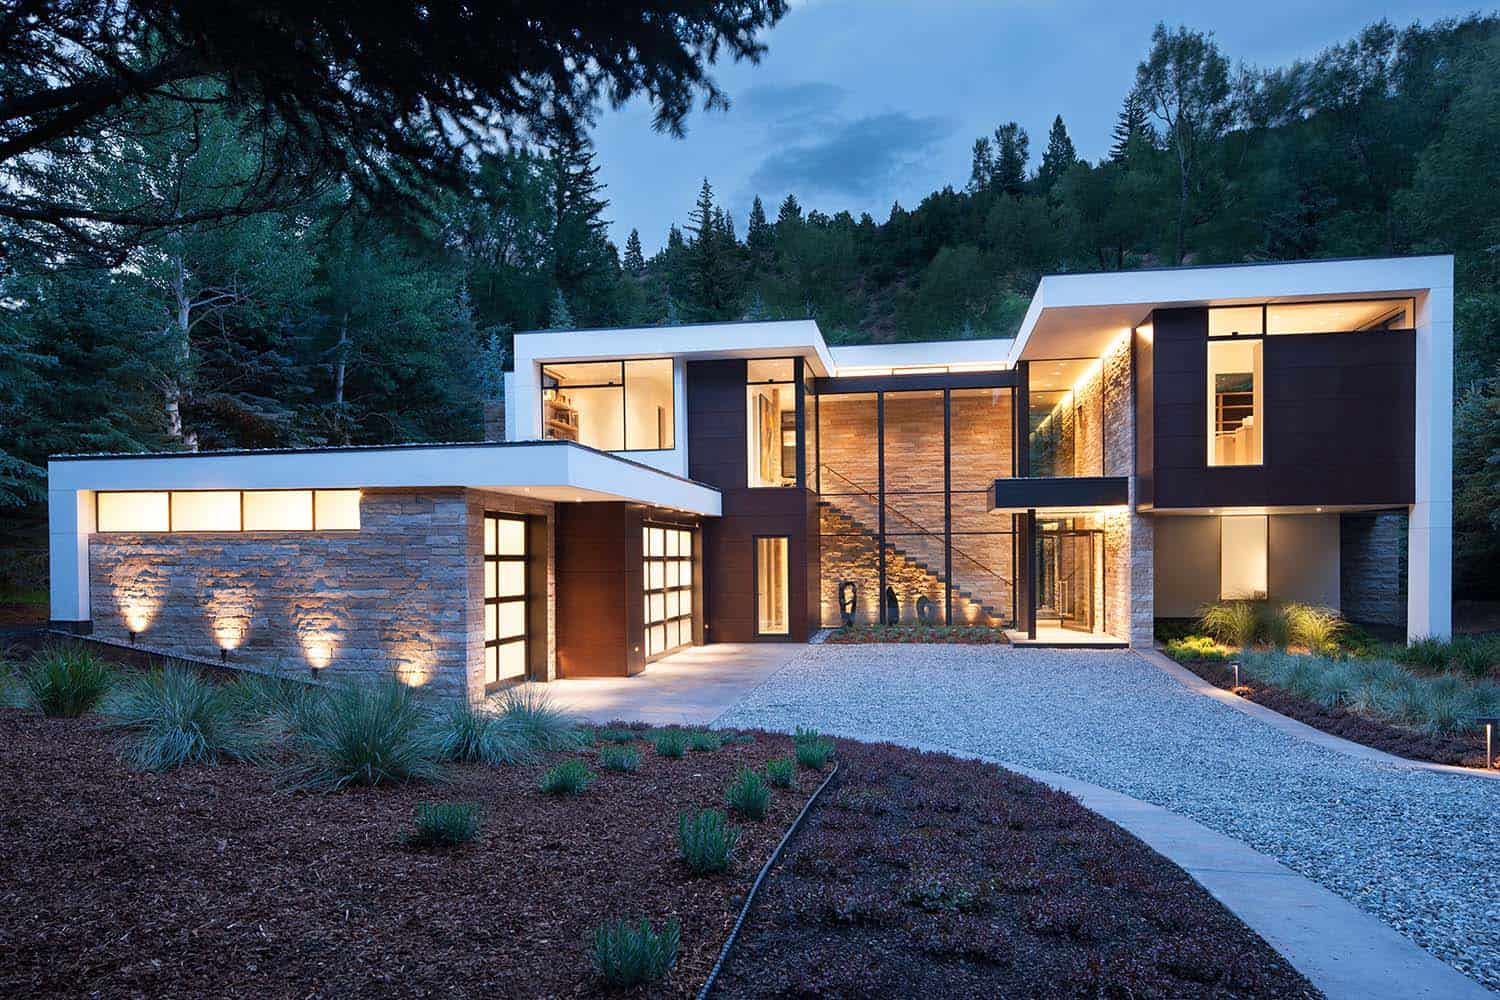 Contemporary Mountain Home-Charles Cunniffe Architects-01-1 Kindesign